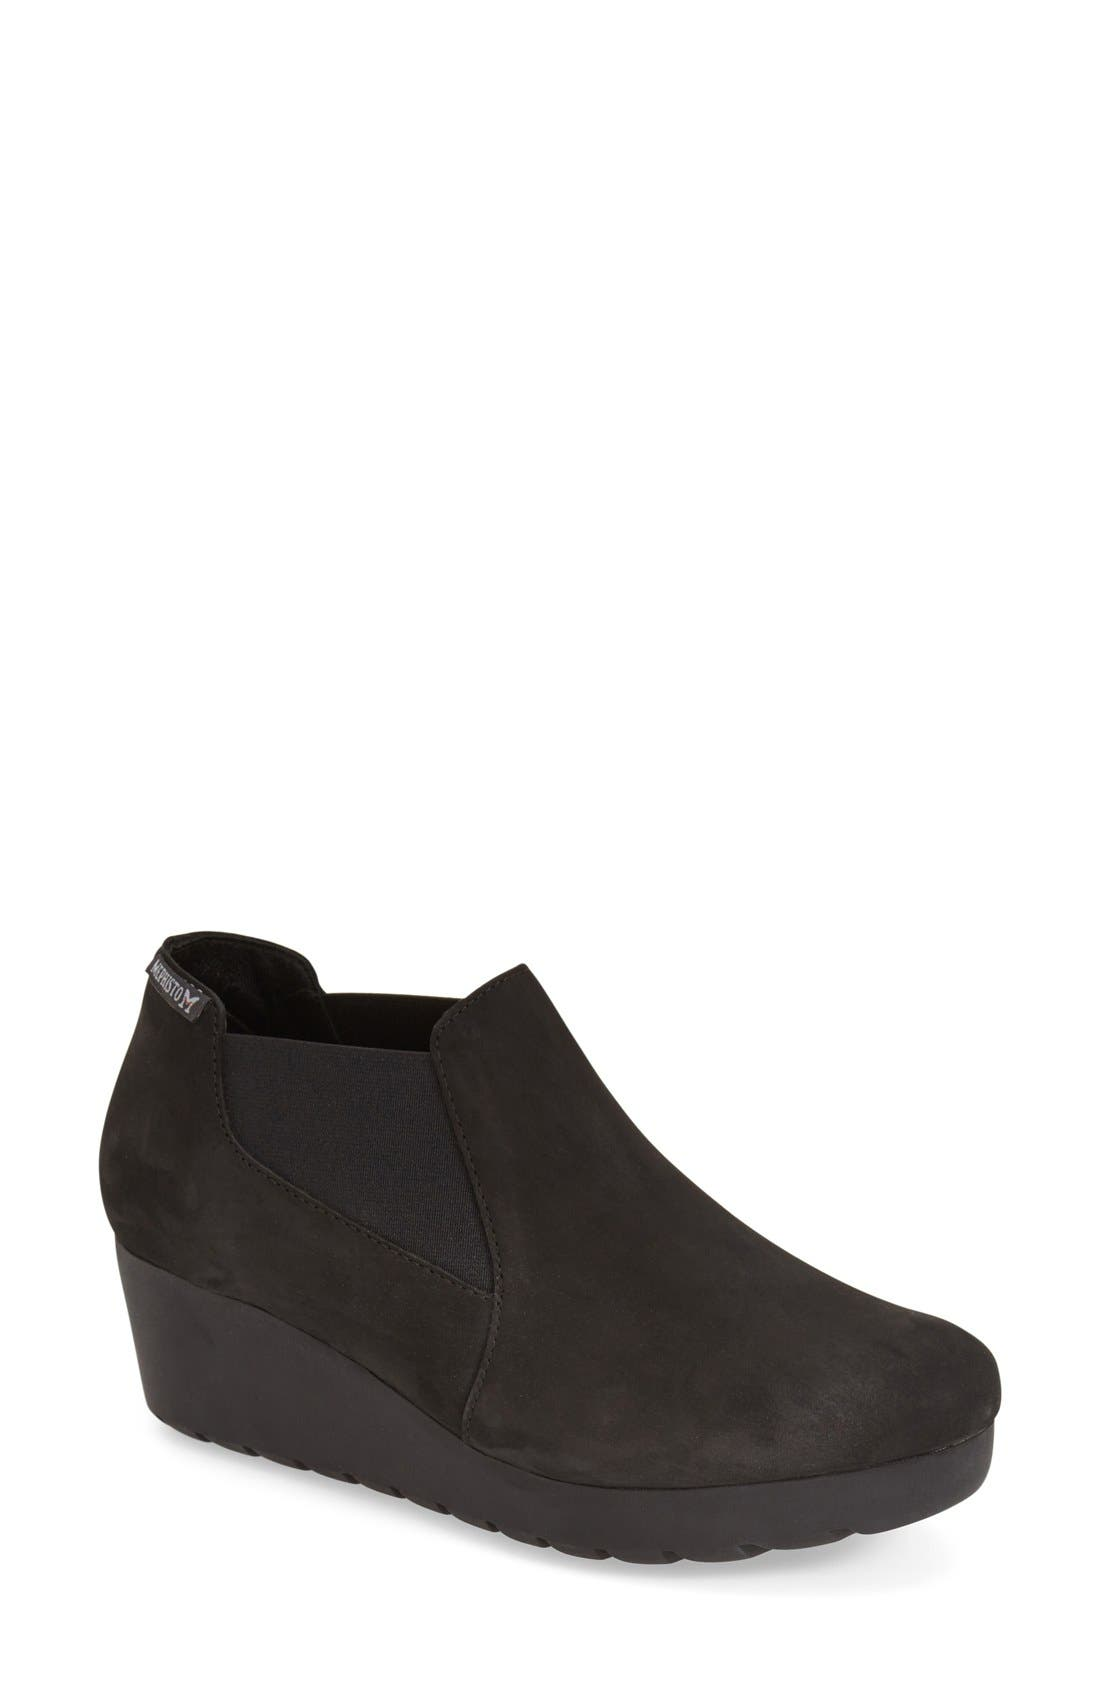 MEPHISTO 'Tosca' Slip-On Wedge, Main, color, BLACK NUBUCK LEATHER